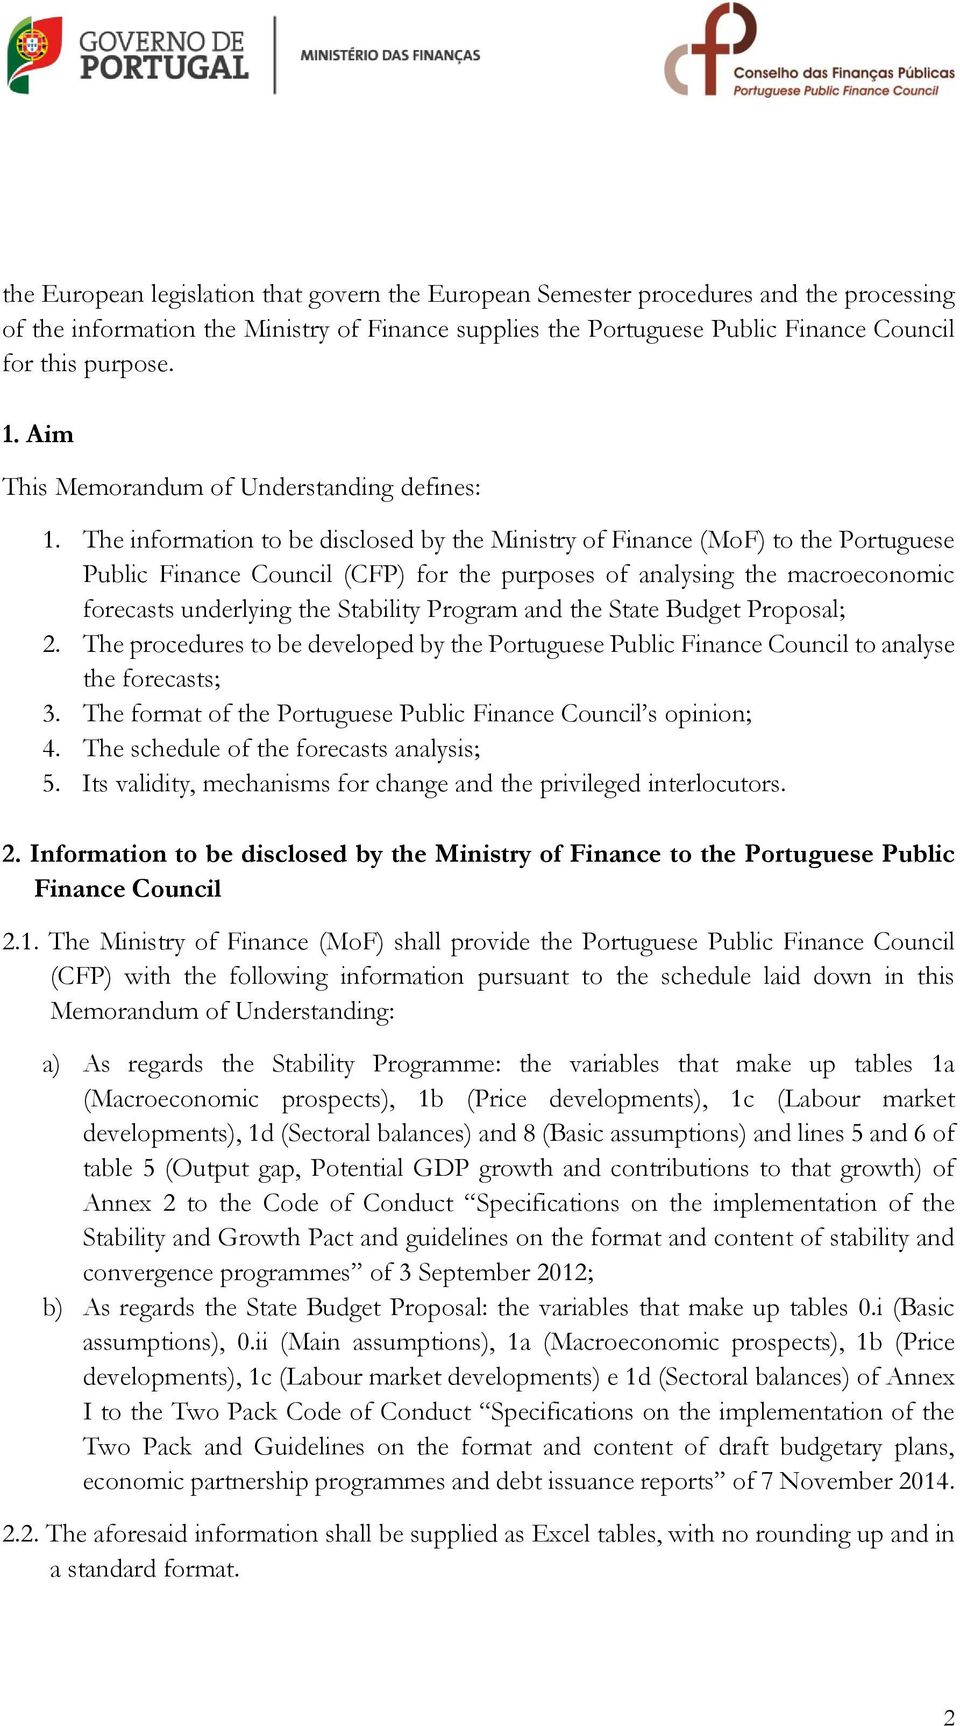 The information to be disclosed by the Ministry of Finance (MoF) to the Portuguese Public Finance Council (CFP) for the purposes of analysing the macroeconomic forecasts underlying the Stability